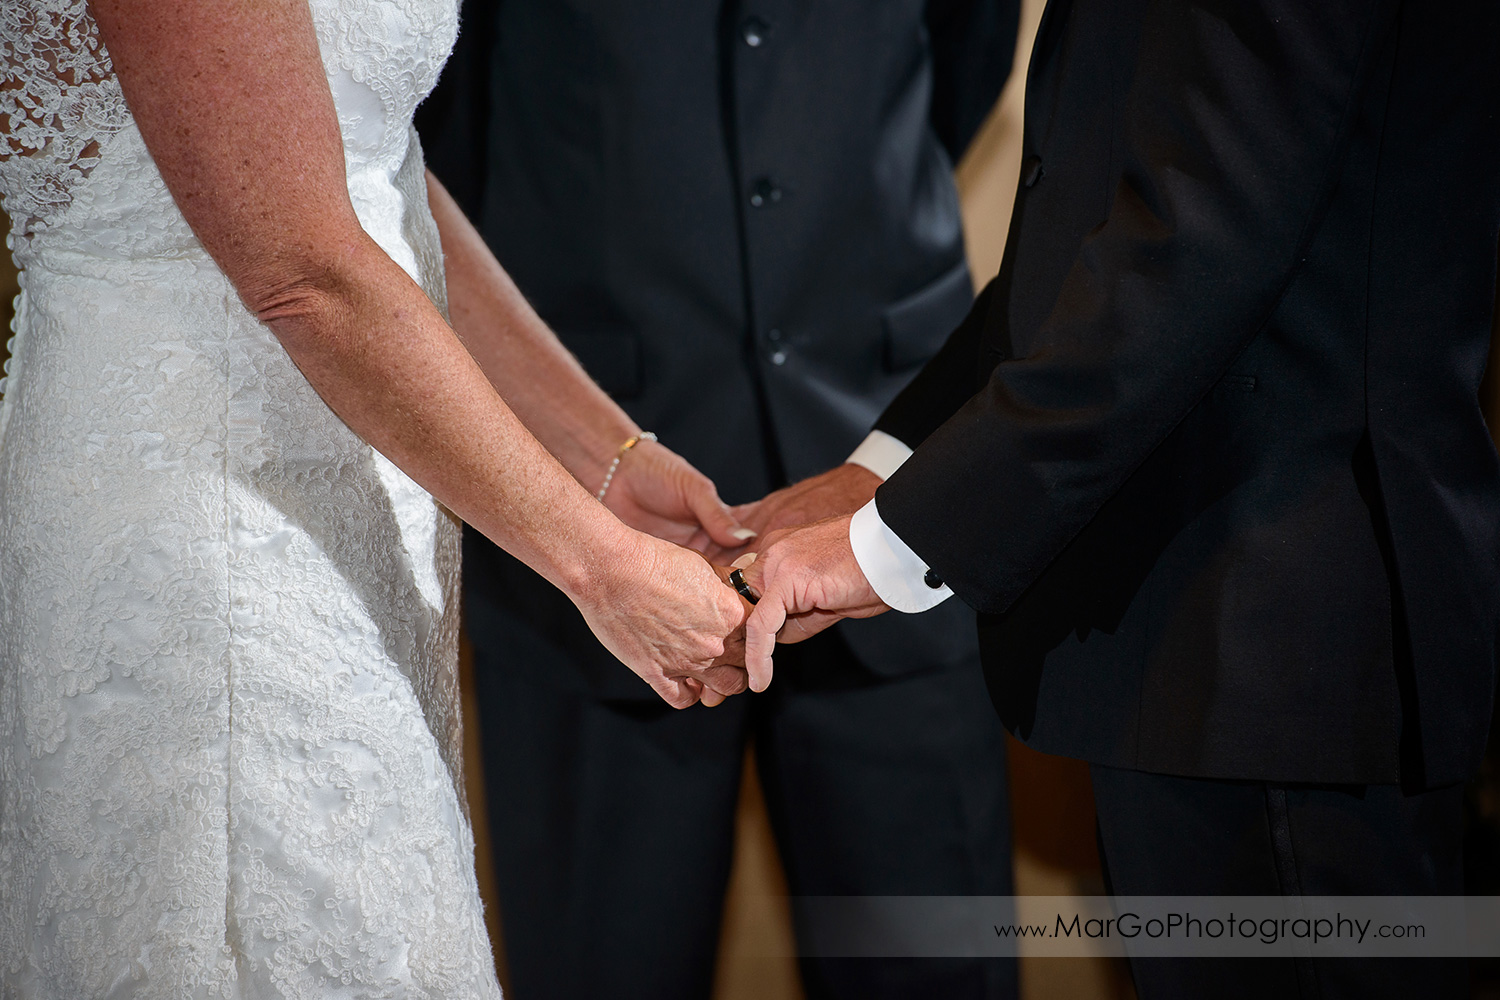 bride and groom holding hands at wedding ceremony at Clubhouse at Las Positas Golf Course in Livermore